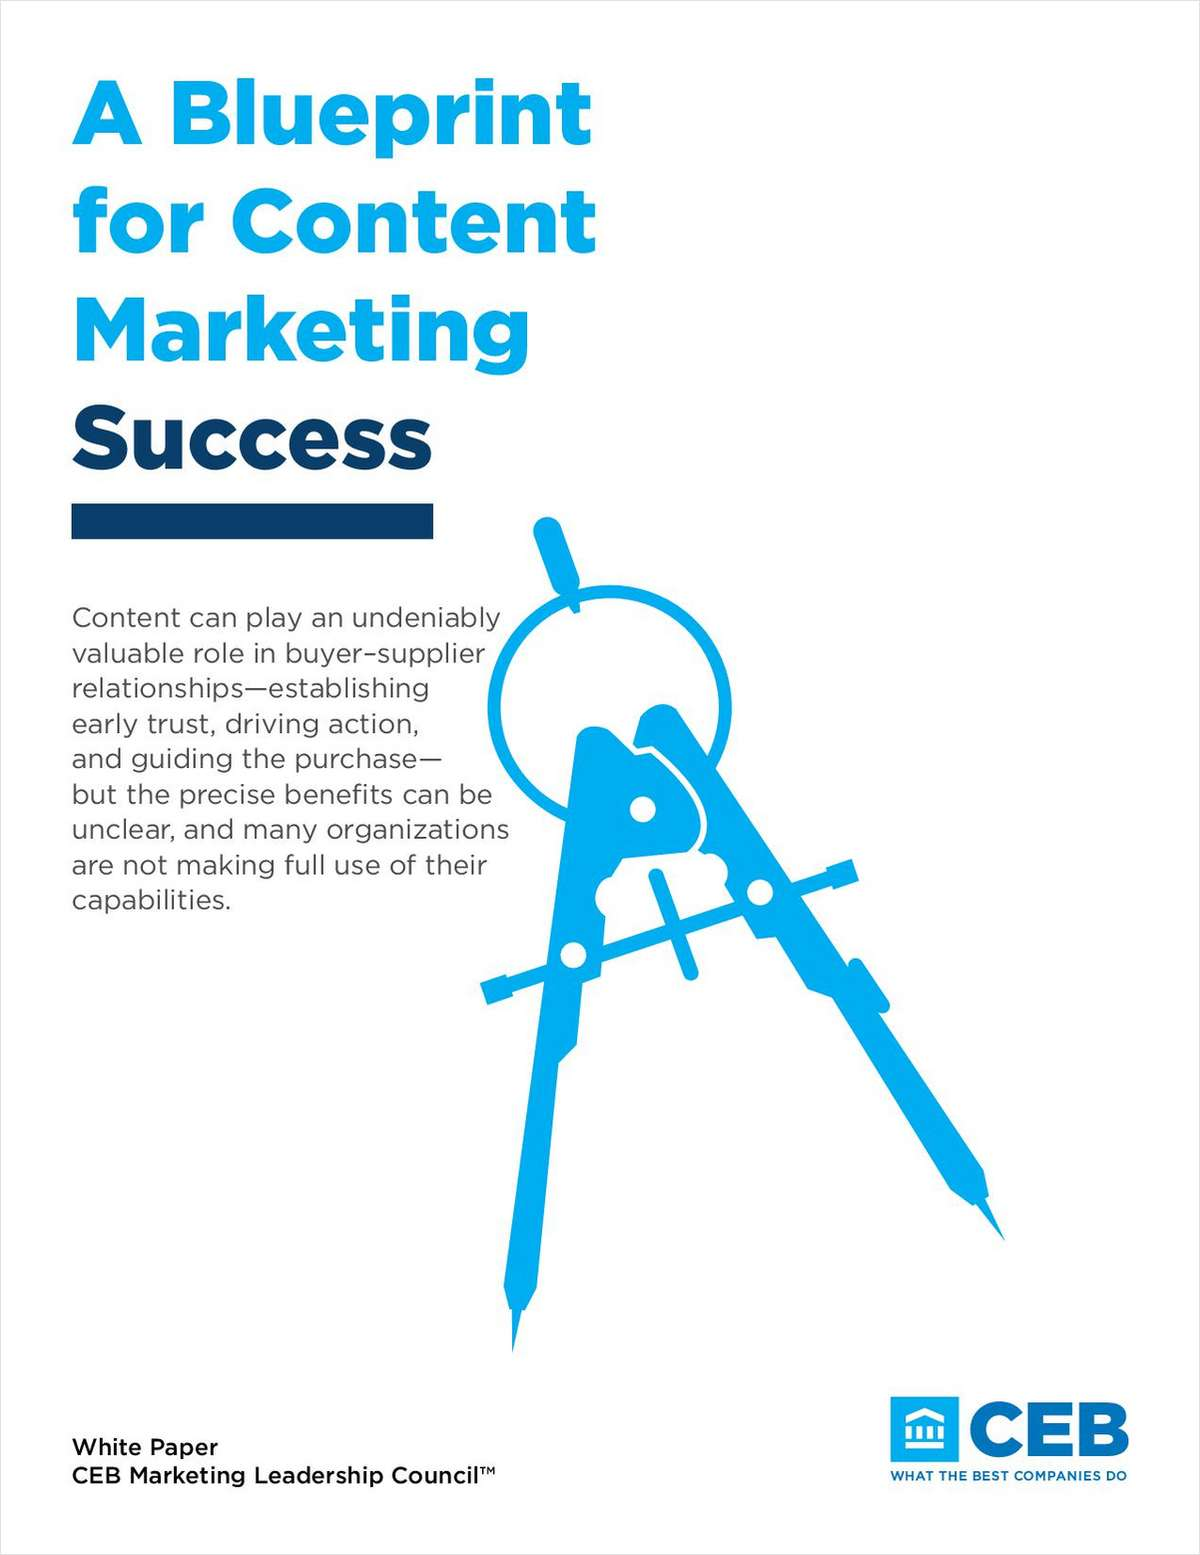 A Blueprint for Content Marketing Success